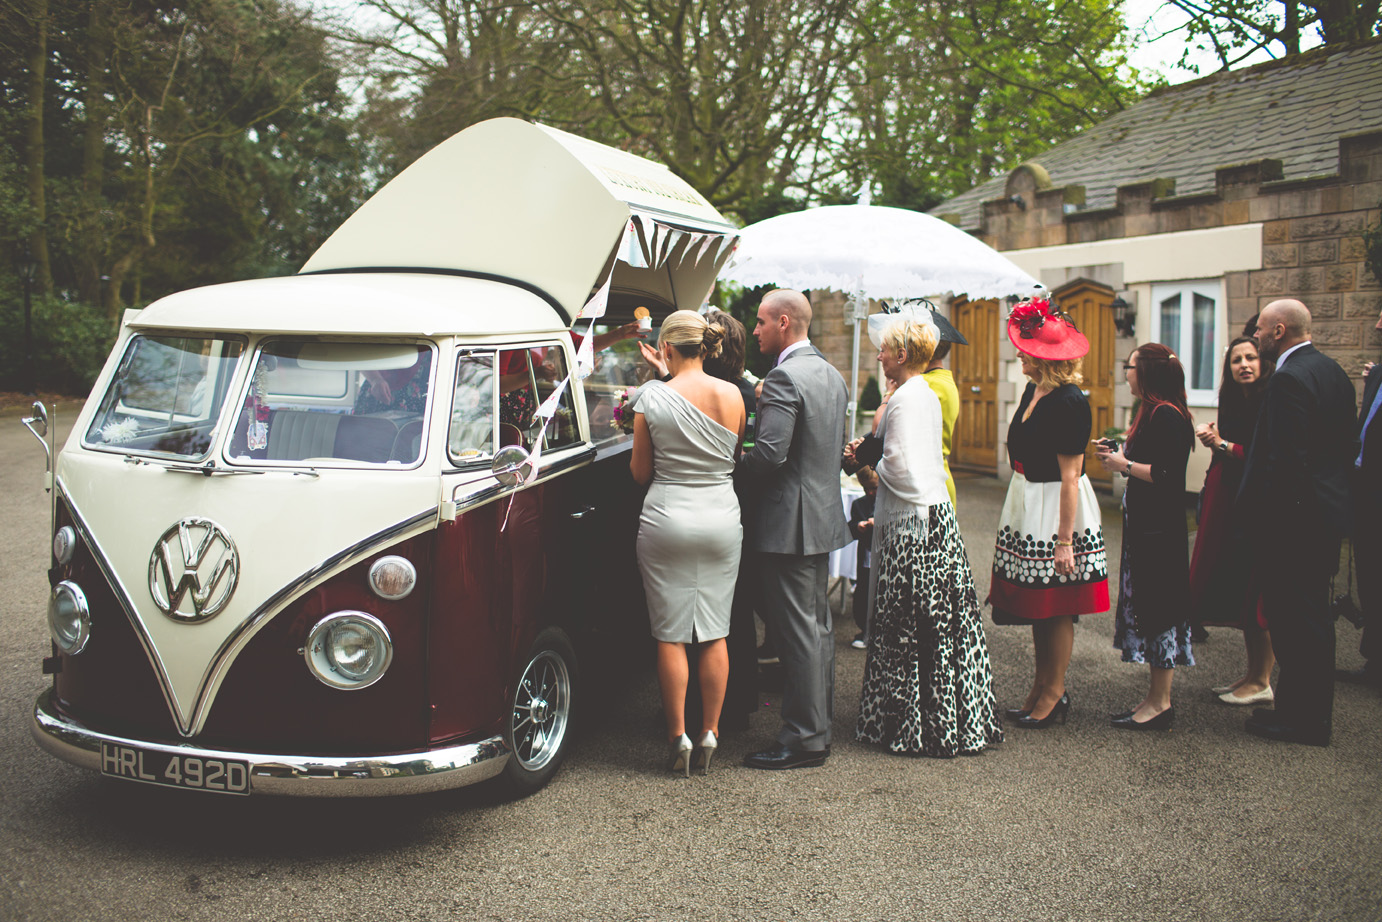 Ice Cream Van Hire could be popular for Weddings & Special Events